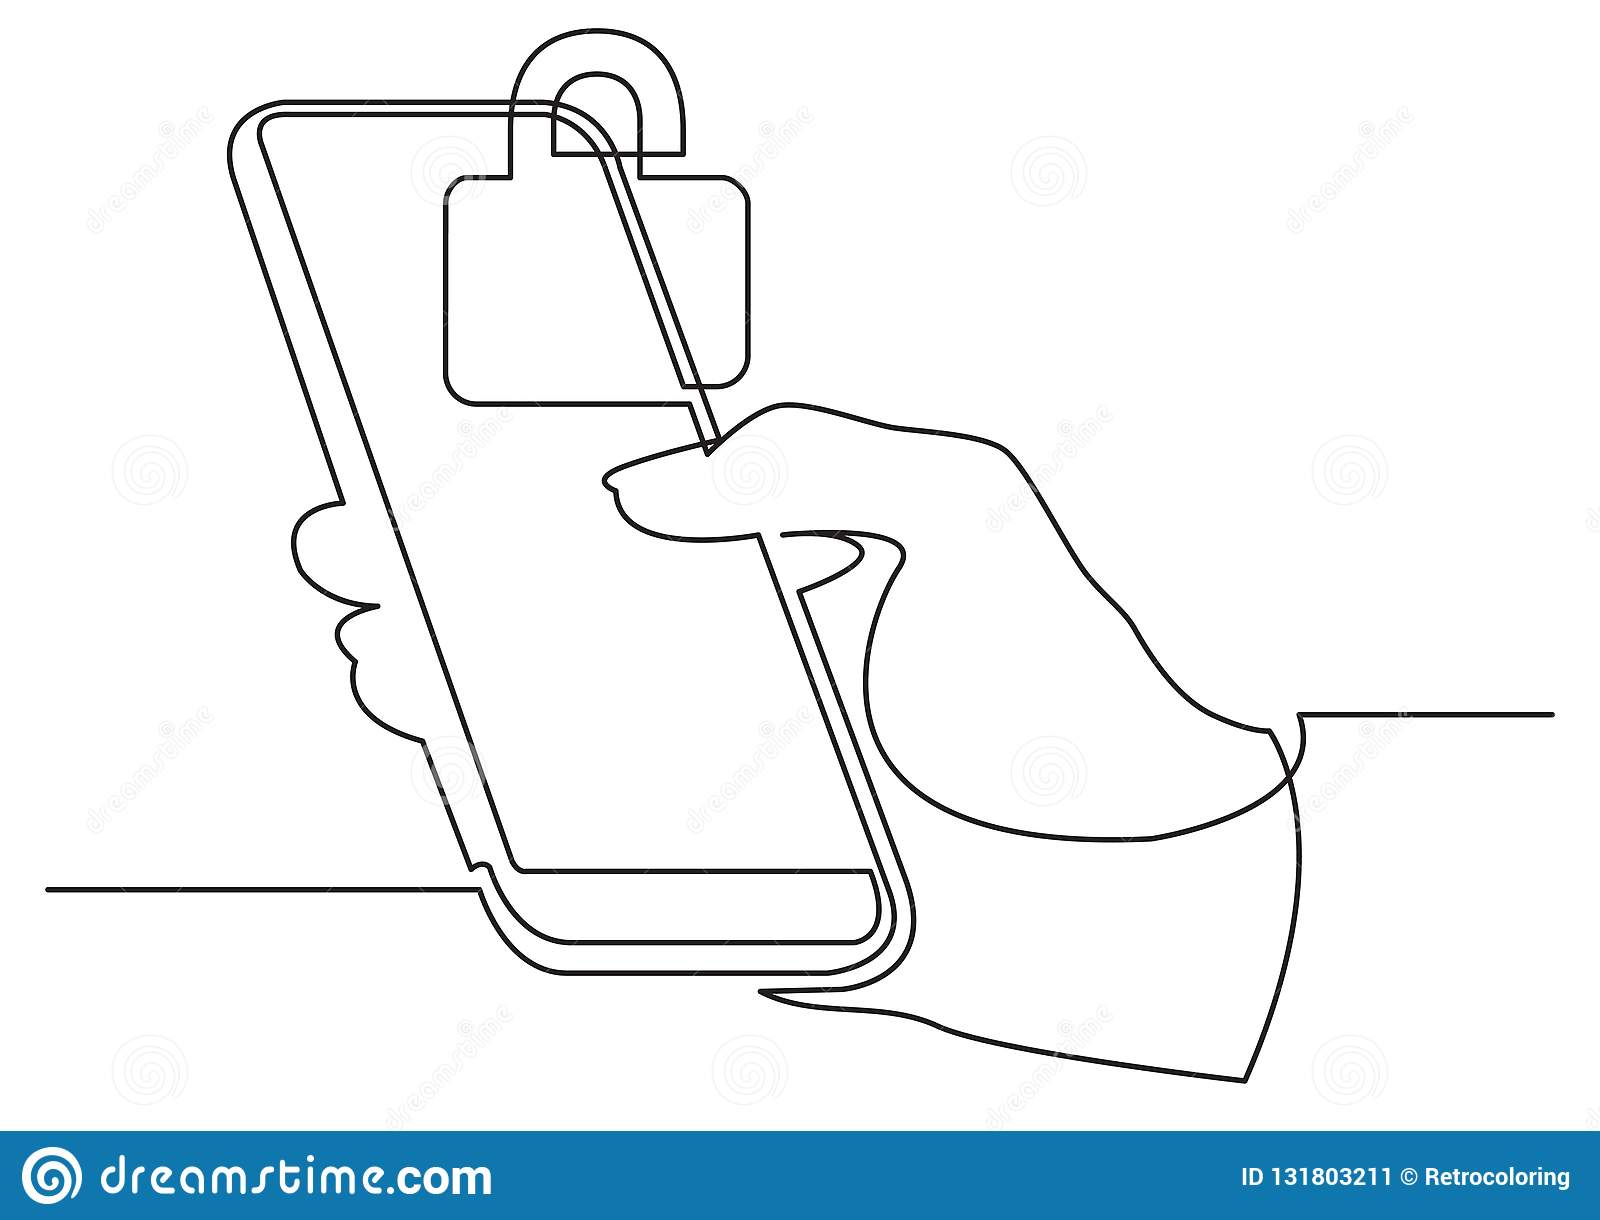 Continuous line drawing of hand using modern mobile phone with security lock